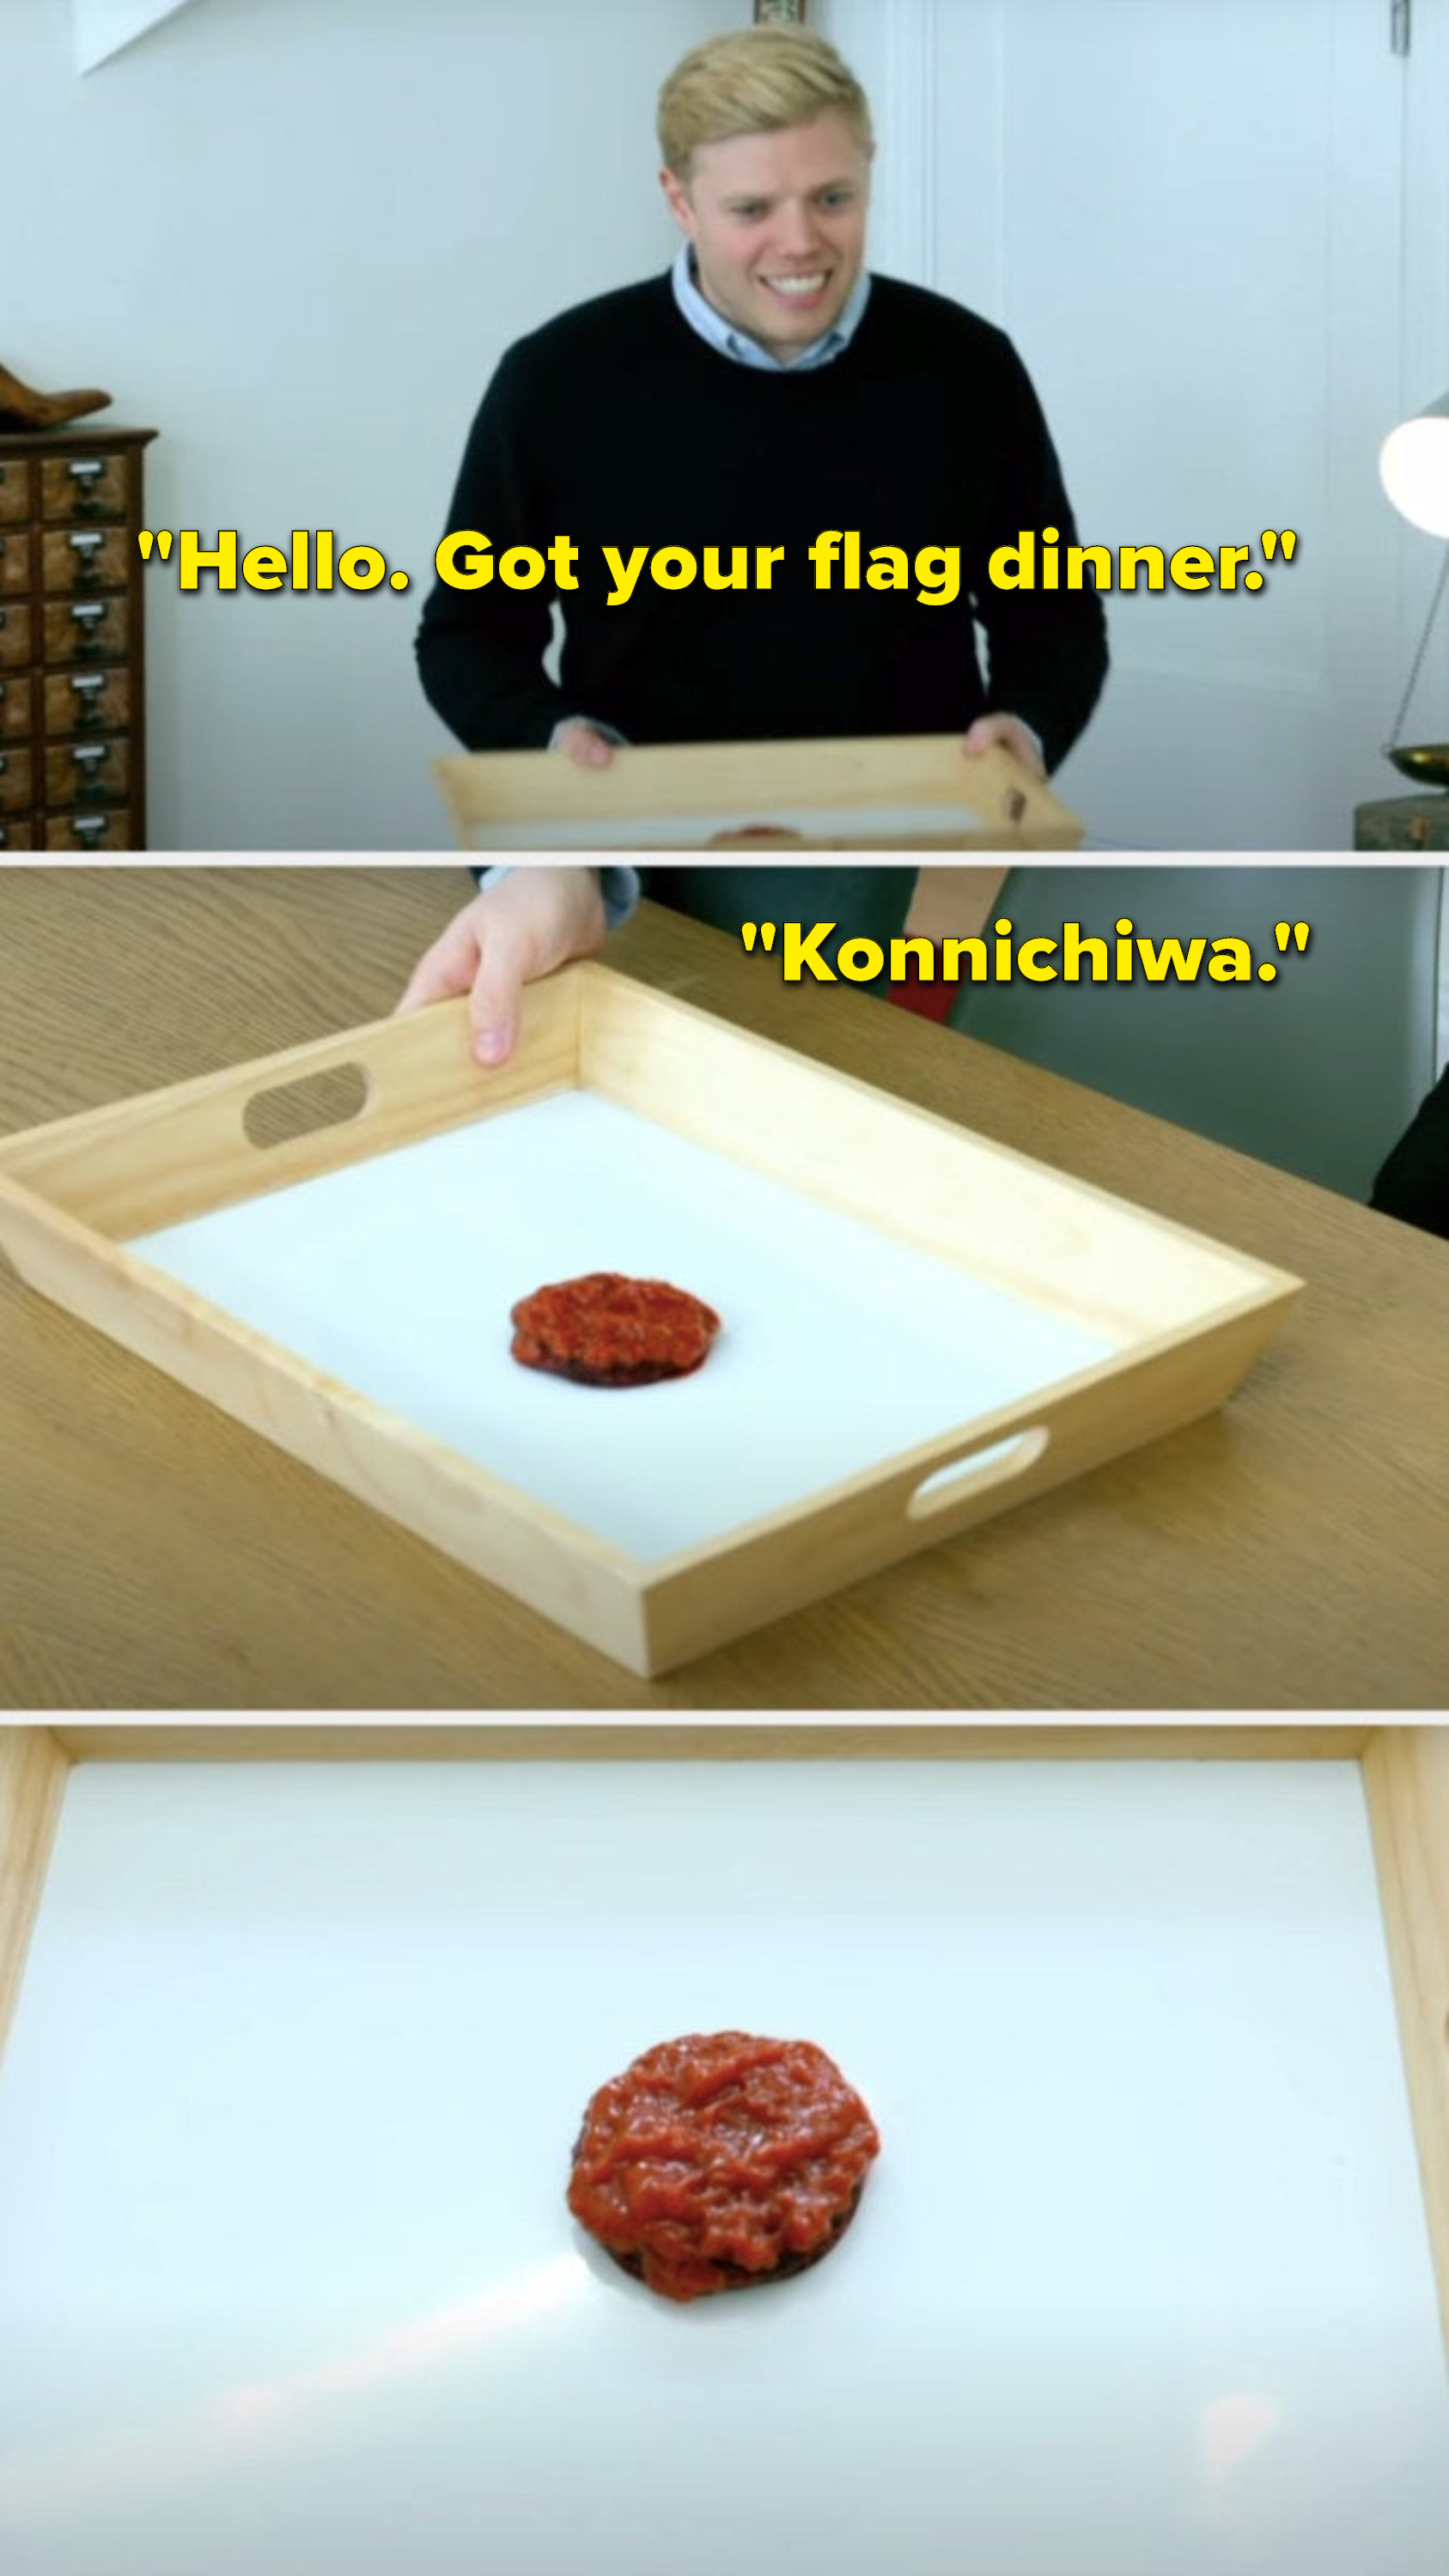 """Rob Beckett says, """"Hello, got your flag dinner, konnichiwa,"""" and we see his meal is a cracker in the middle of a piece of paper, meant to look like the Japanese flag"""